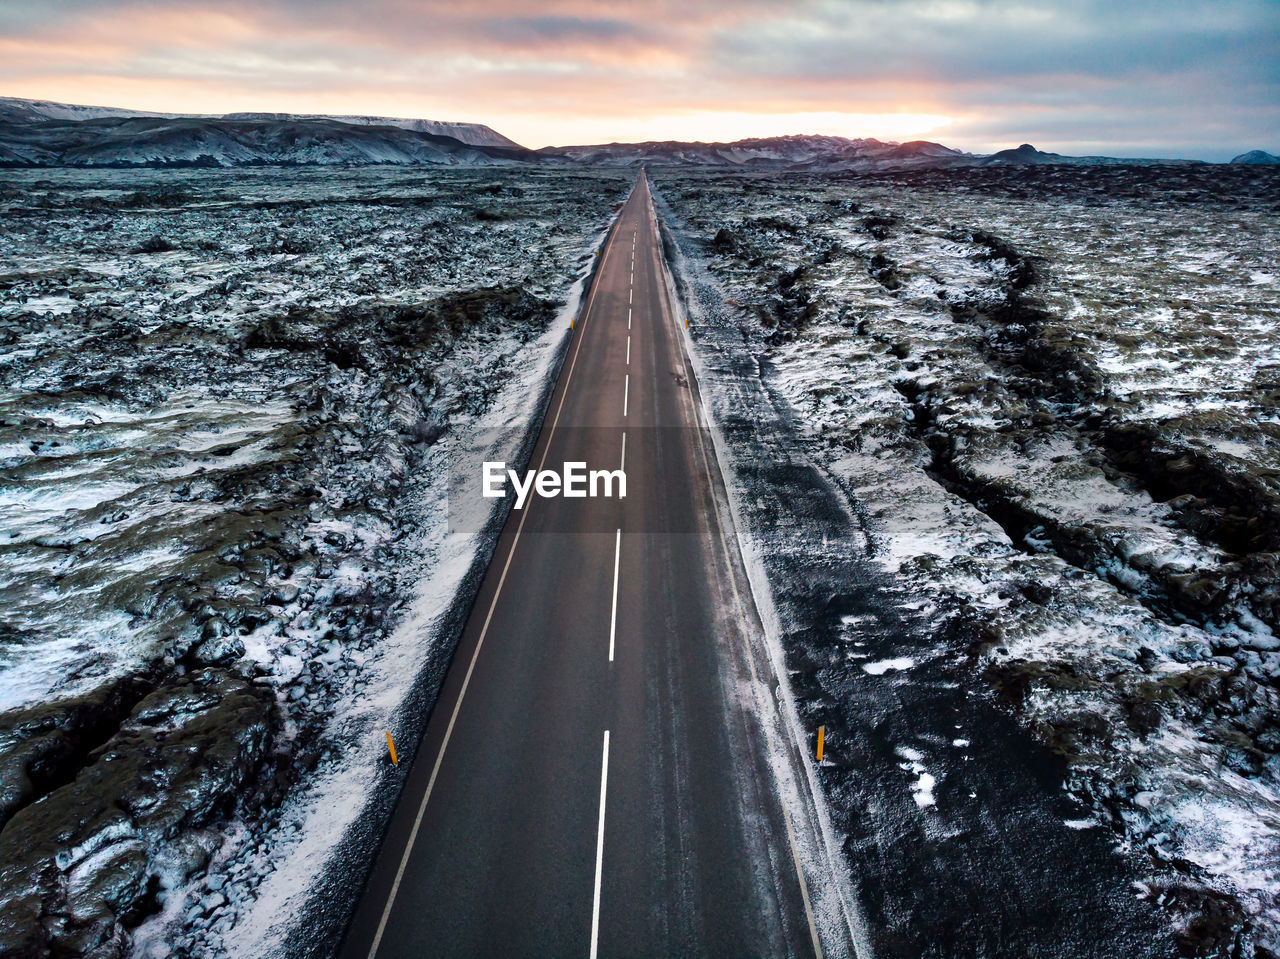 transportation, sky, the way forward, road, direction, nature, no people, diminishing perspective, snow, cold temperature, cloud - sky, winter, sign, vanishing point, beauty in nature, sunset, outdoors, symbol, scenics - nature, dividing line